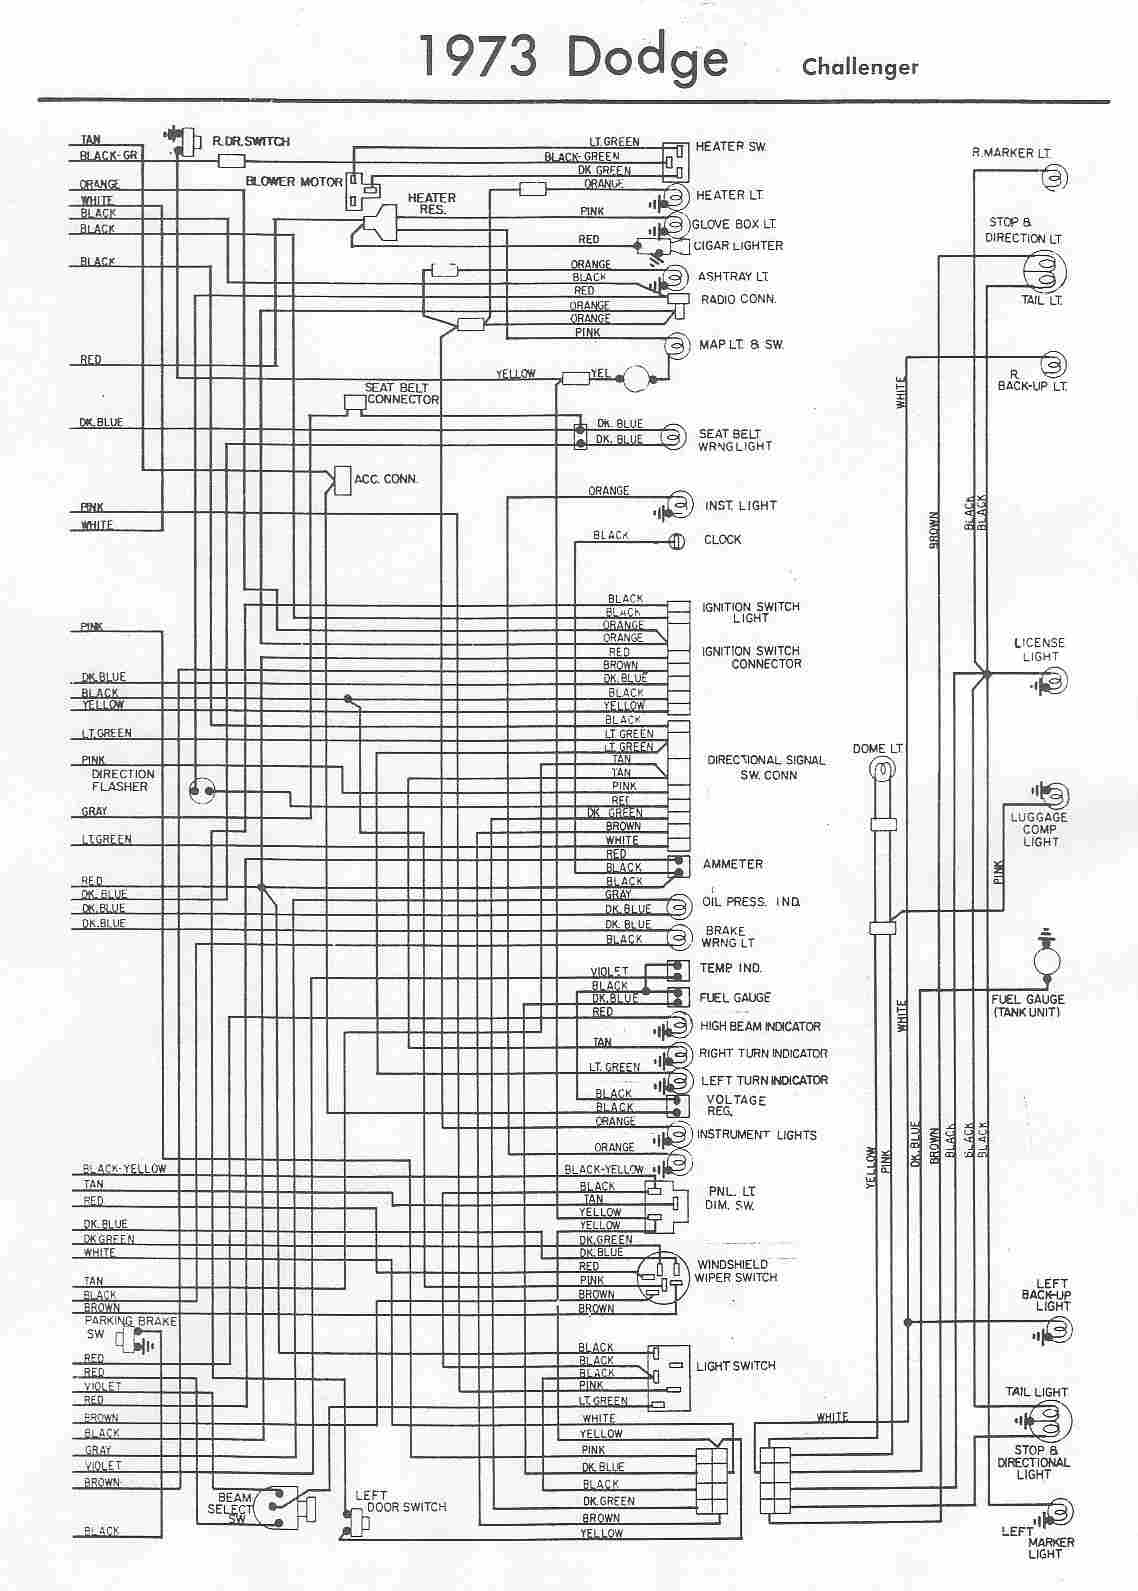 small resolution of electrical wiring diagram of 1973 dodge challenger